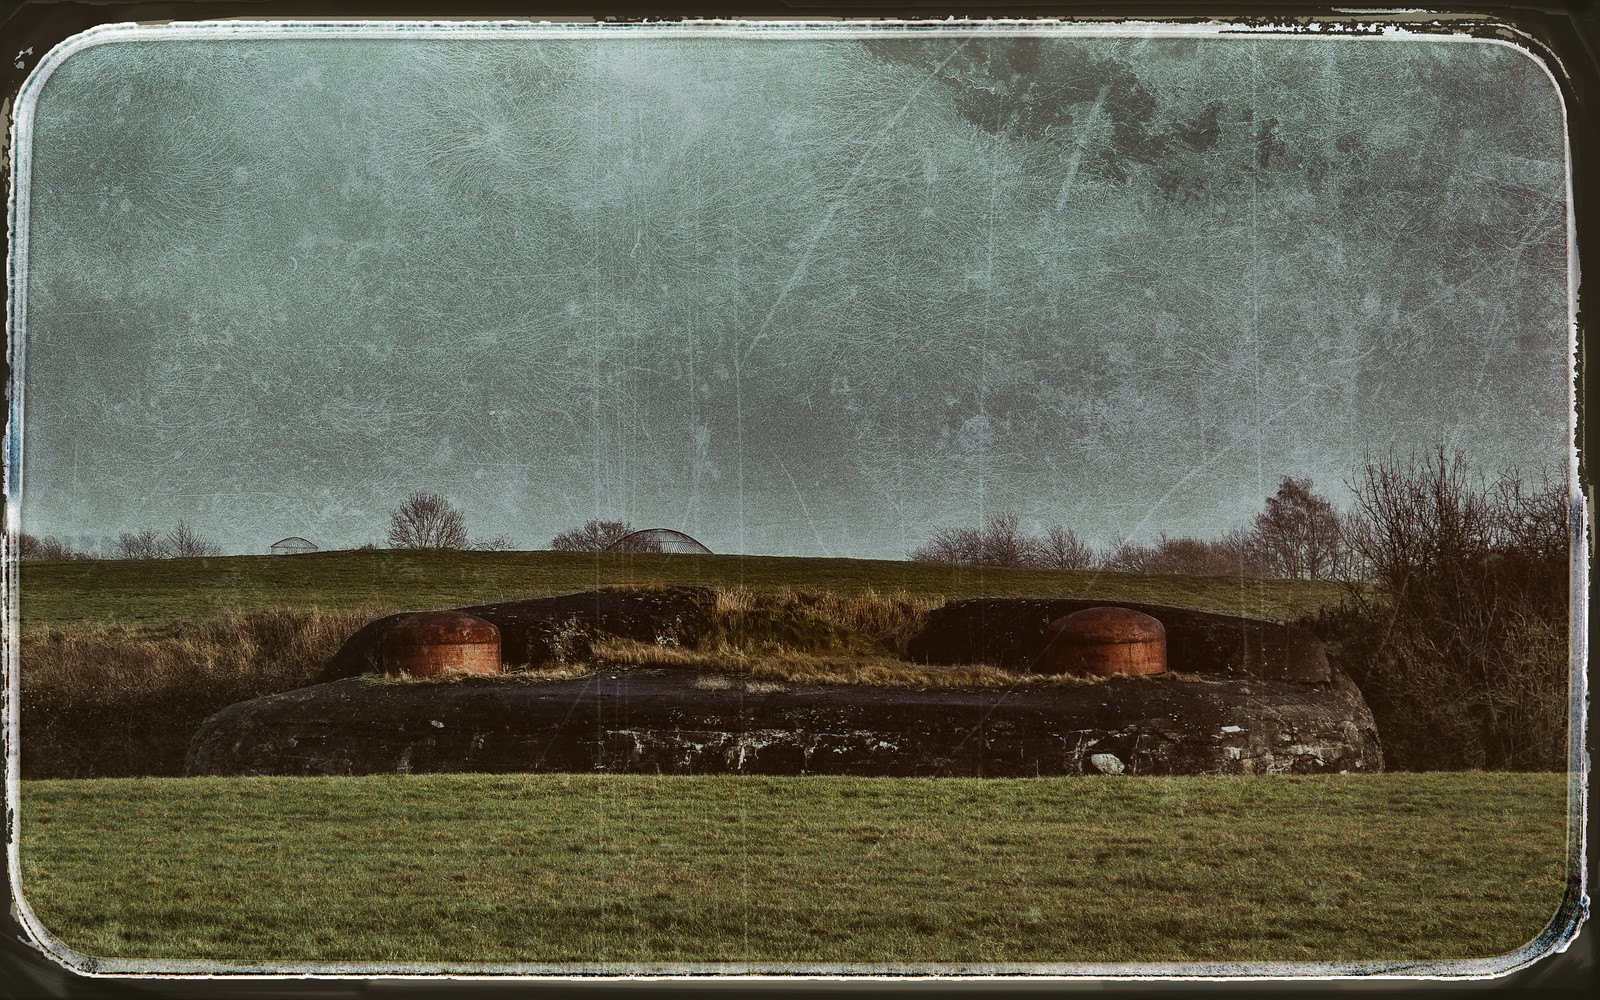 the one and only  documented image of the landing zone of extraterrestrial flying objects in Belgium   by glasseyes view